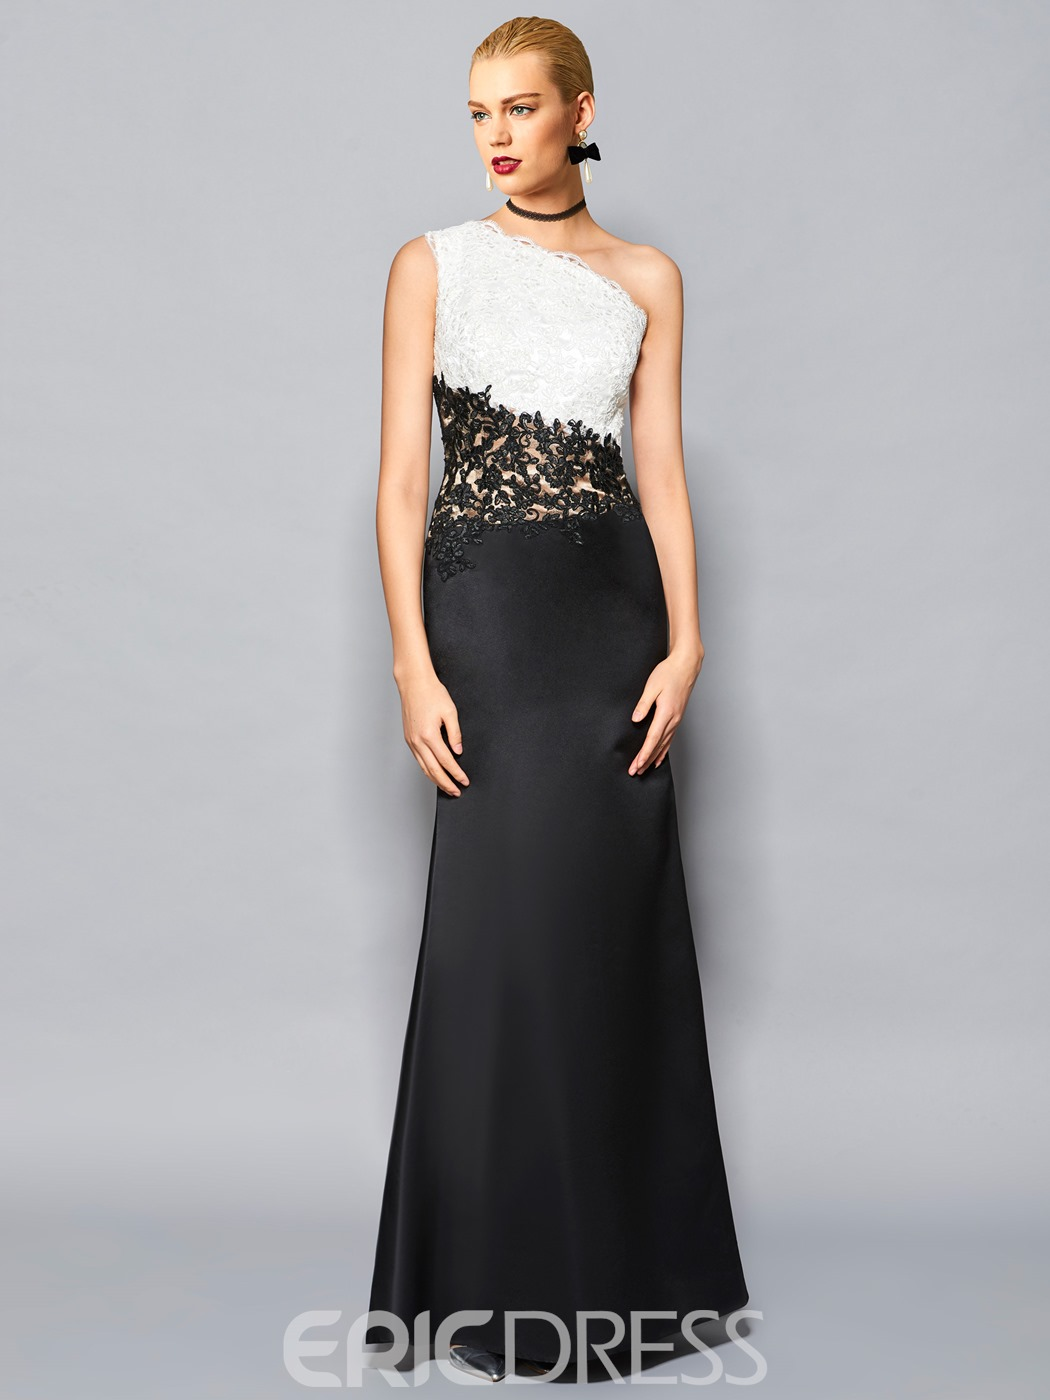 Ericdress Fancy Sheath One Shoulder Lace Applique Floor Length Evening Dress